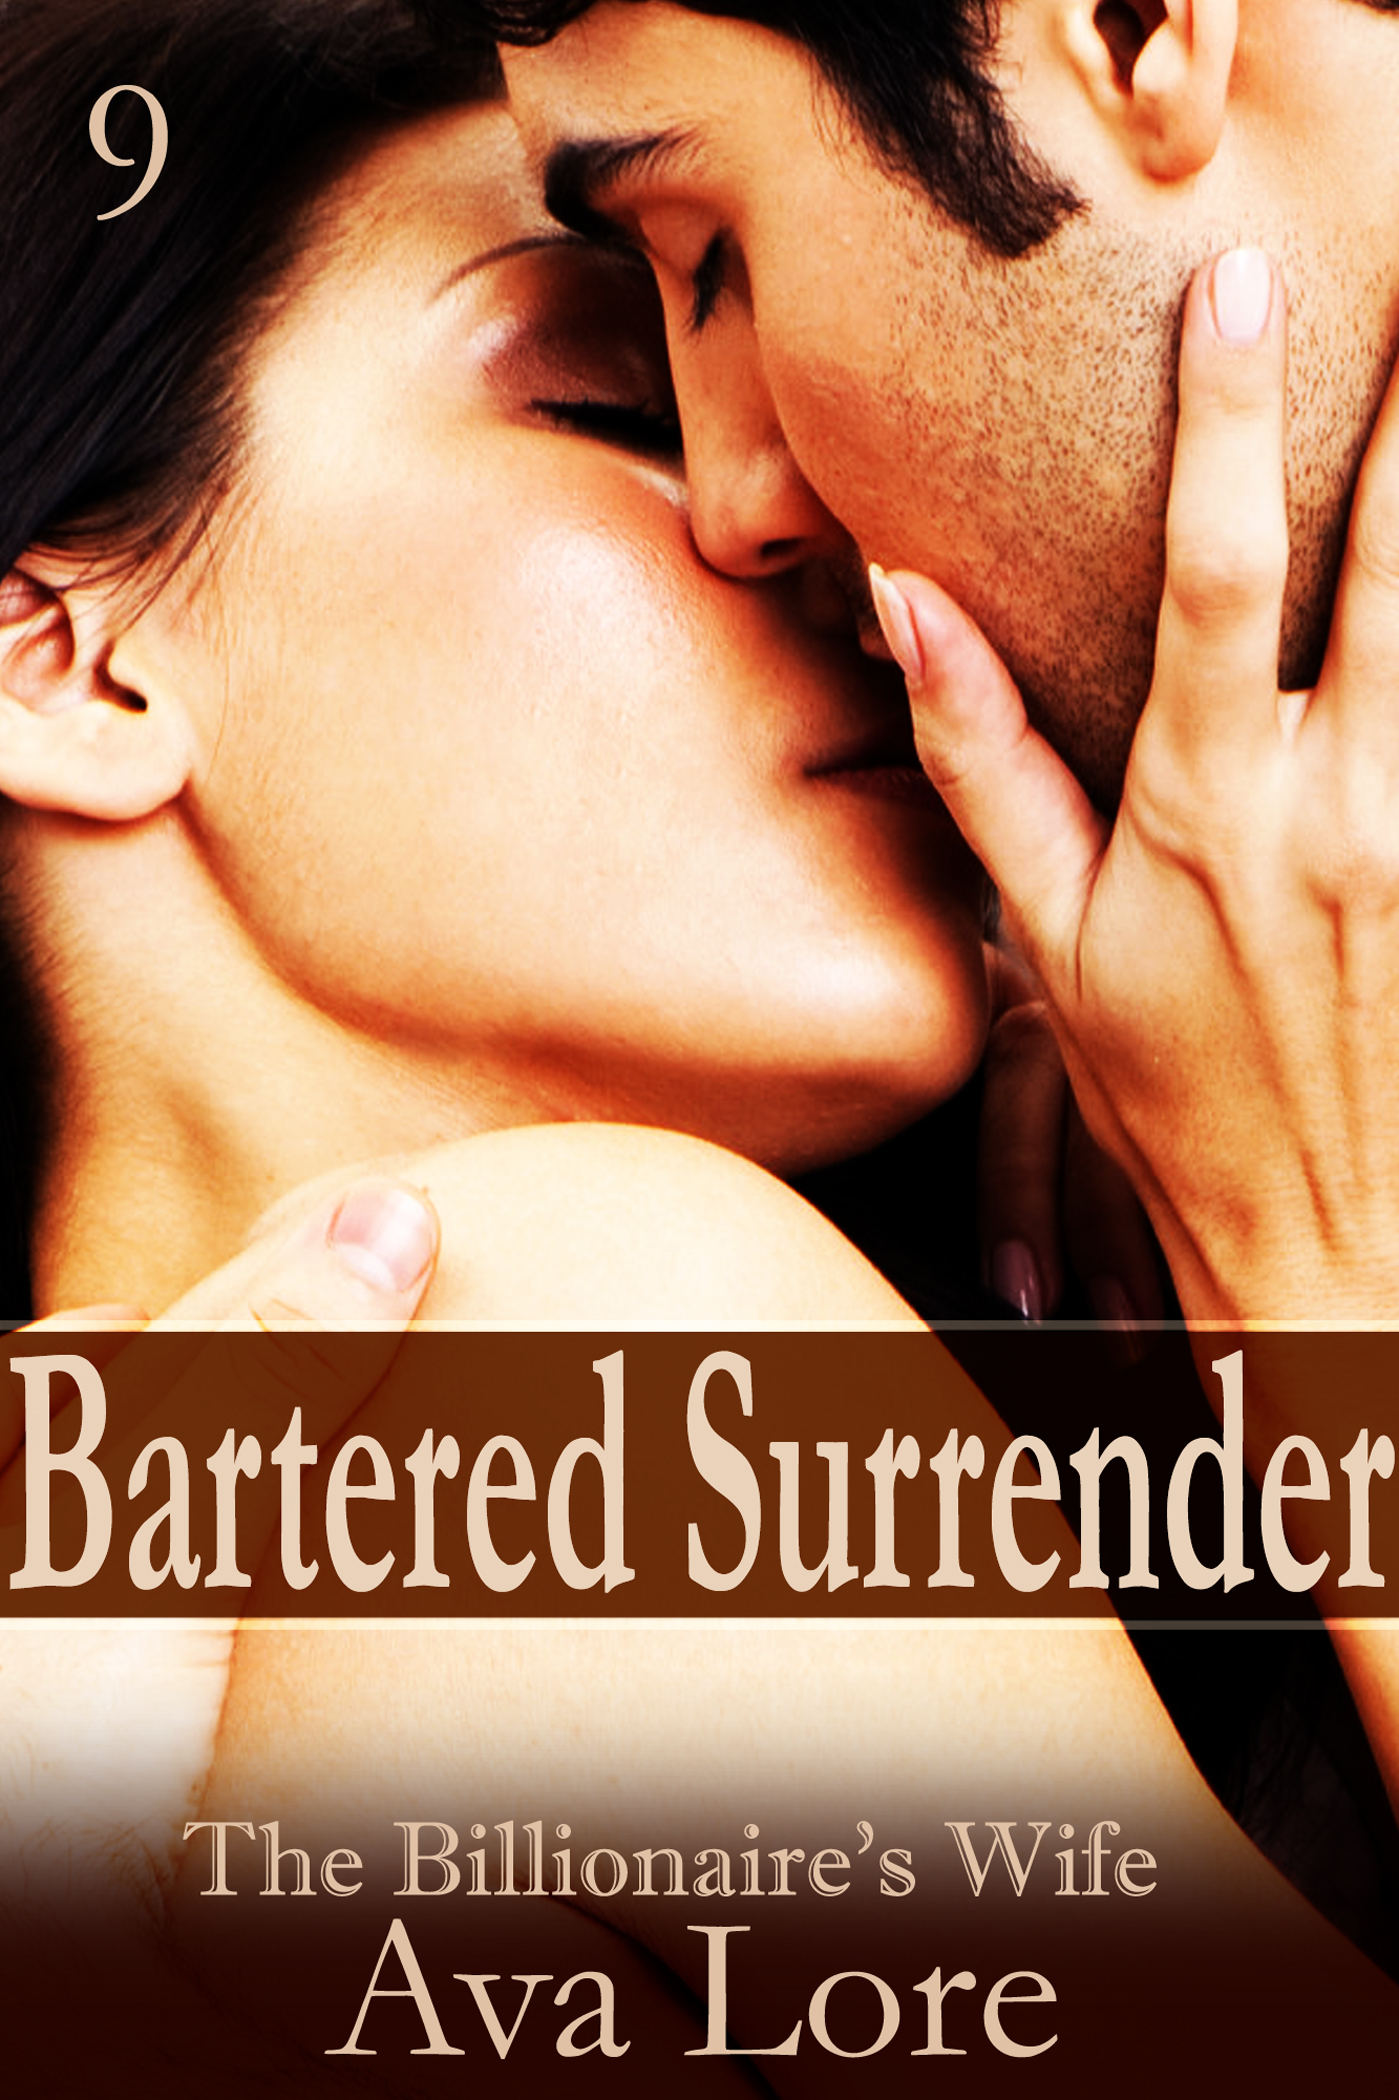 Bartered Surrender: The Billionaire's Wife, Part 9 (A BDSM Erotic Romance)